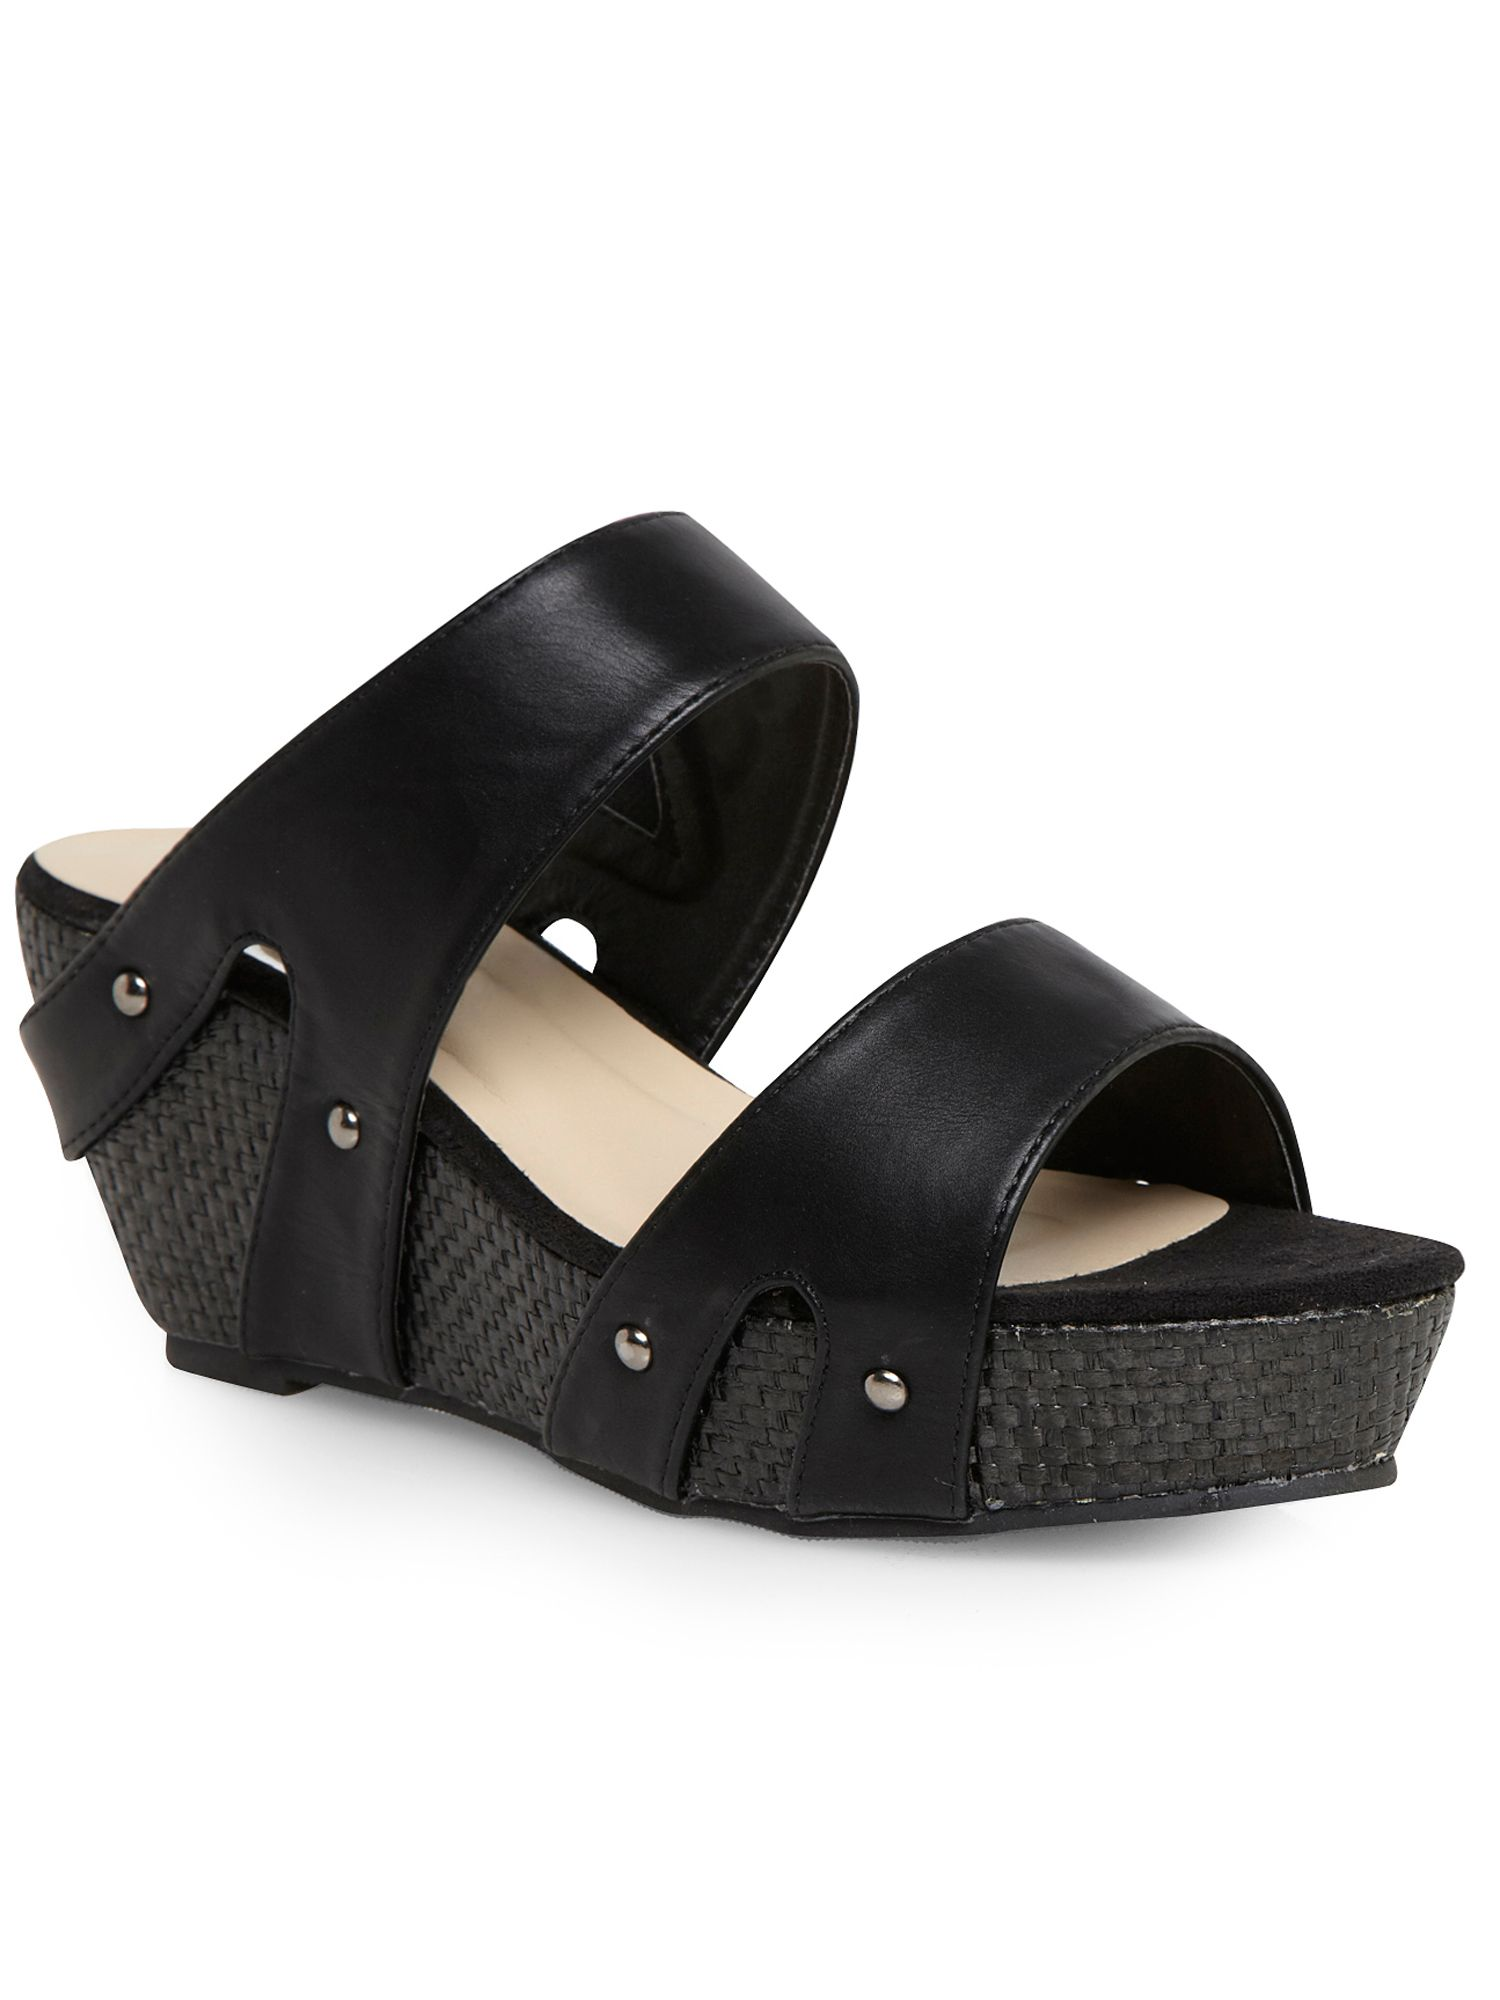 Black strappy mule wedge sandals